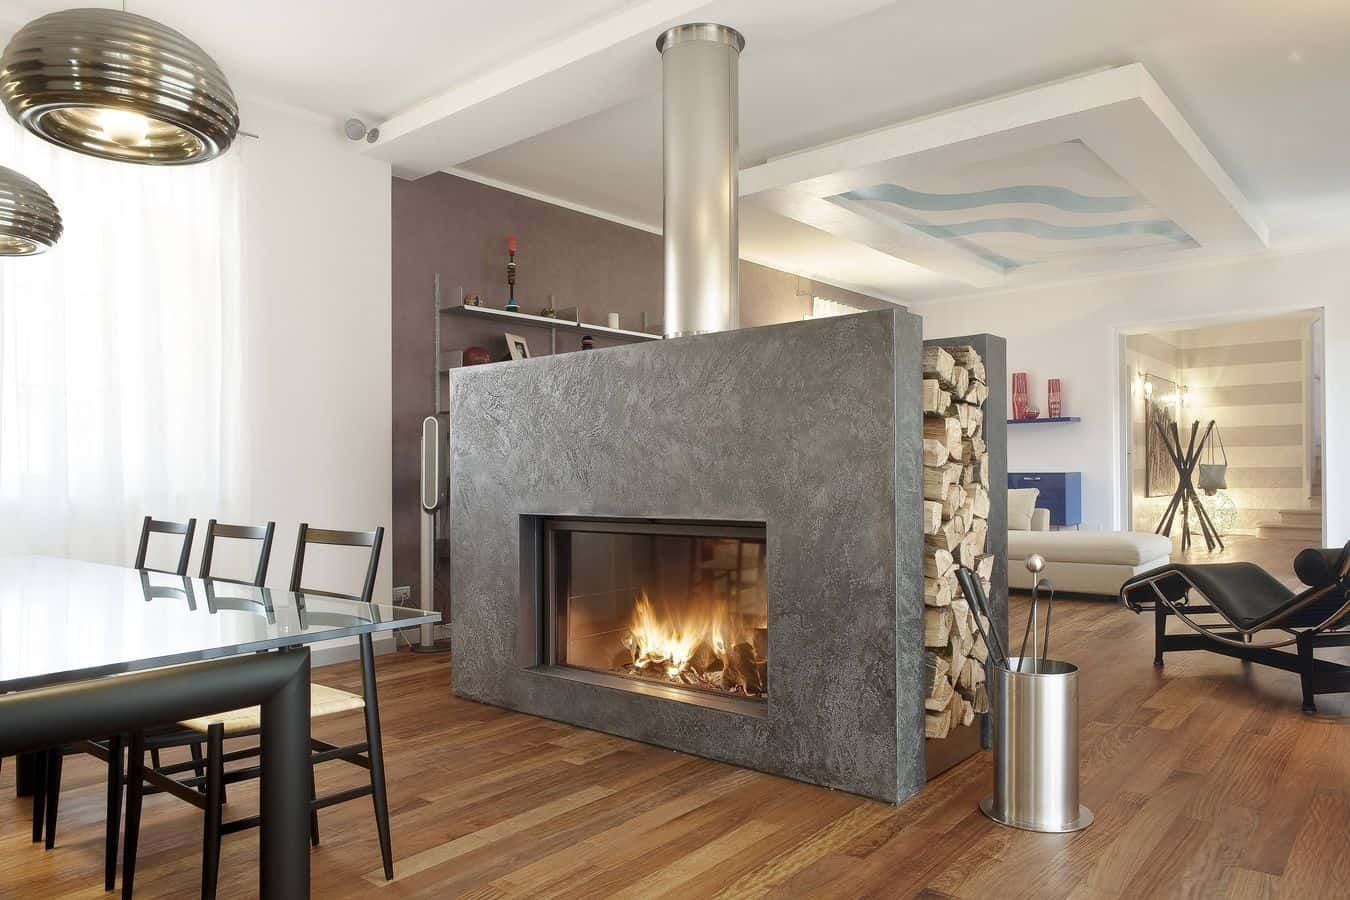 20 Functional Double Sided Fireplaces For Your Spacious Home Homesthetics Inspiring Ideas For Your Home Fireplace Design Double Sided Fireplace Wood Fireplace